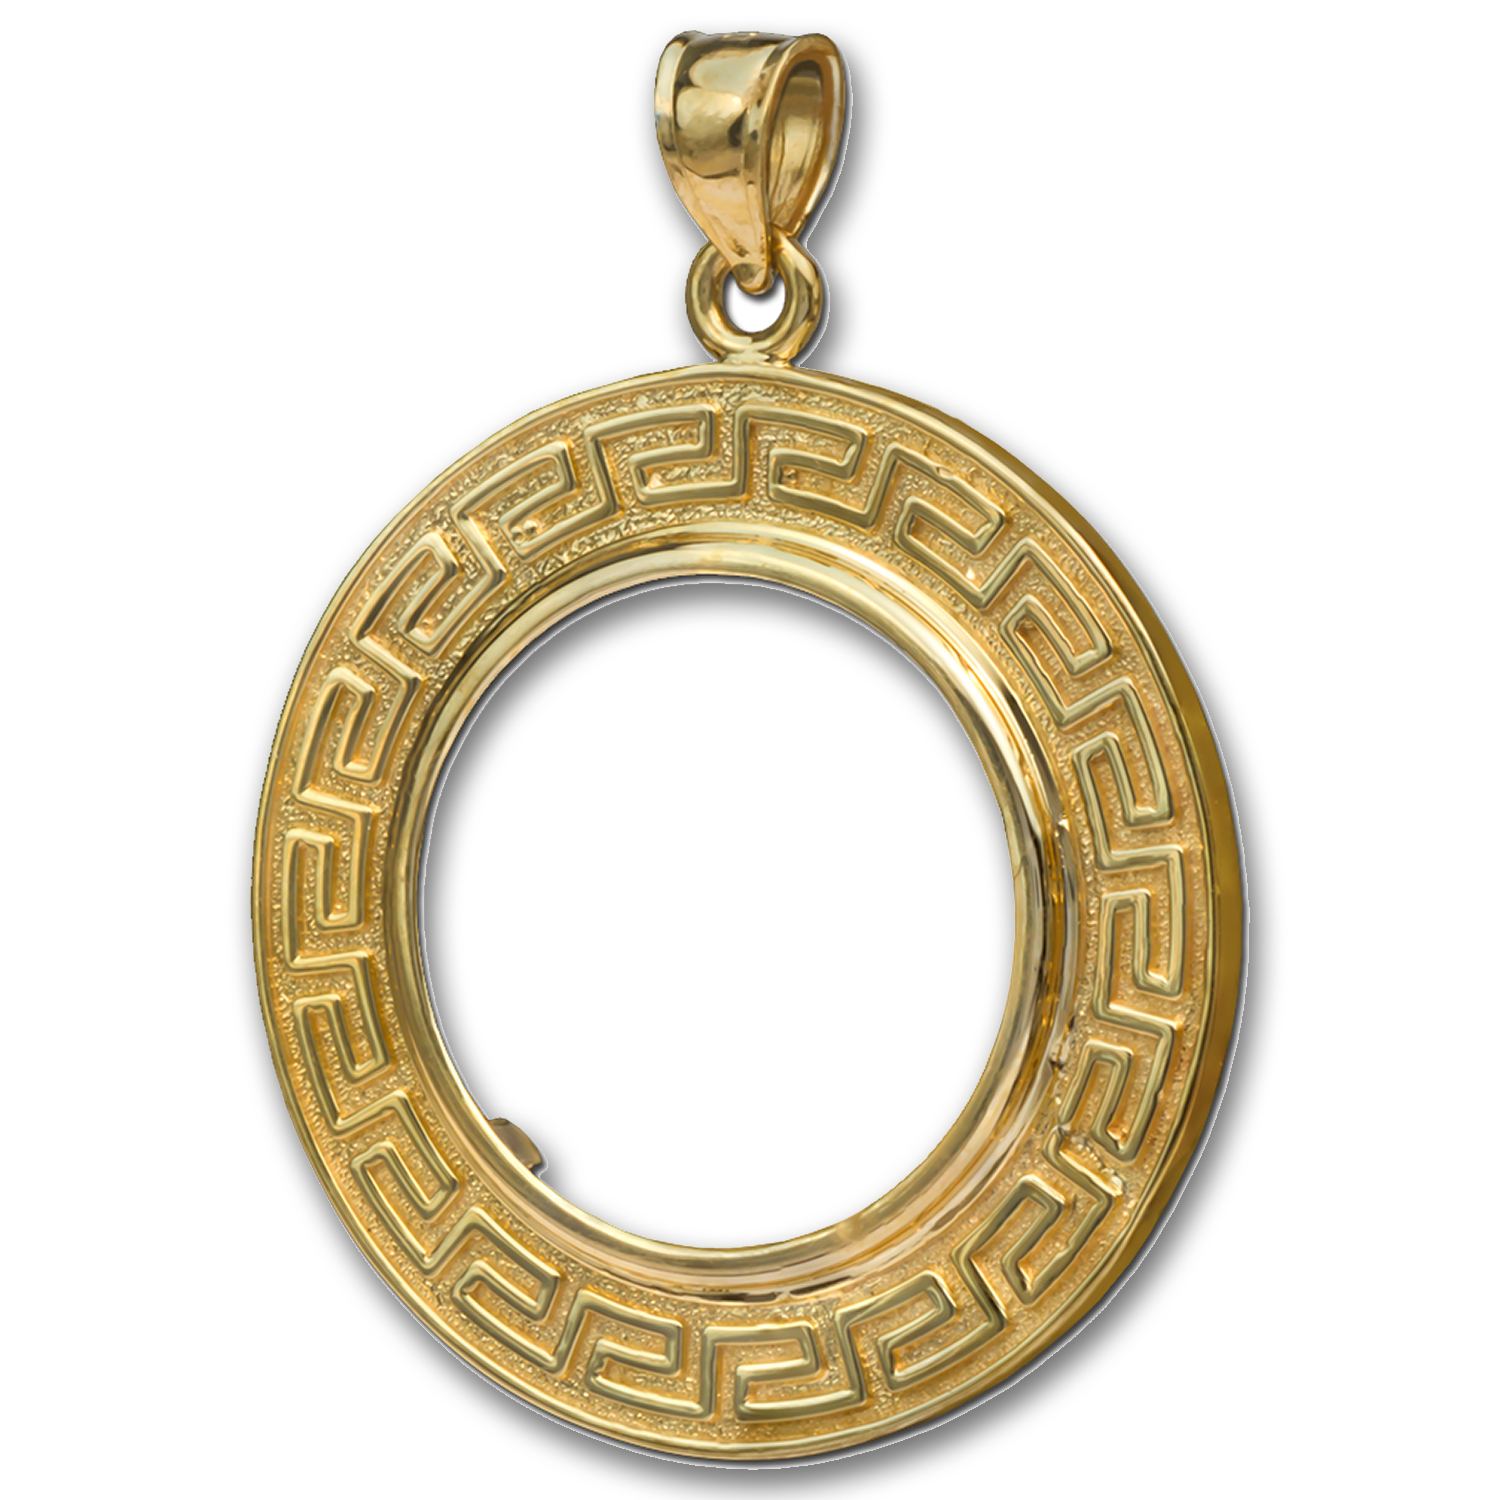 14K Gold Prong Greek Key Coin Bezel - 14 mm